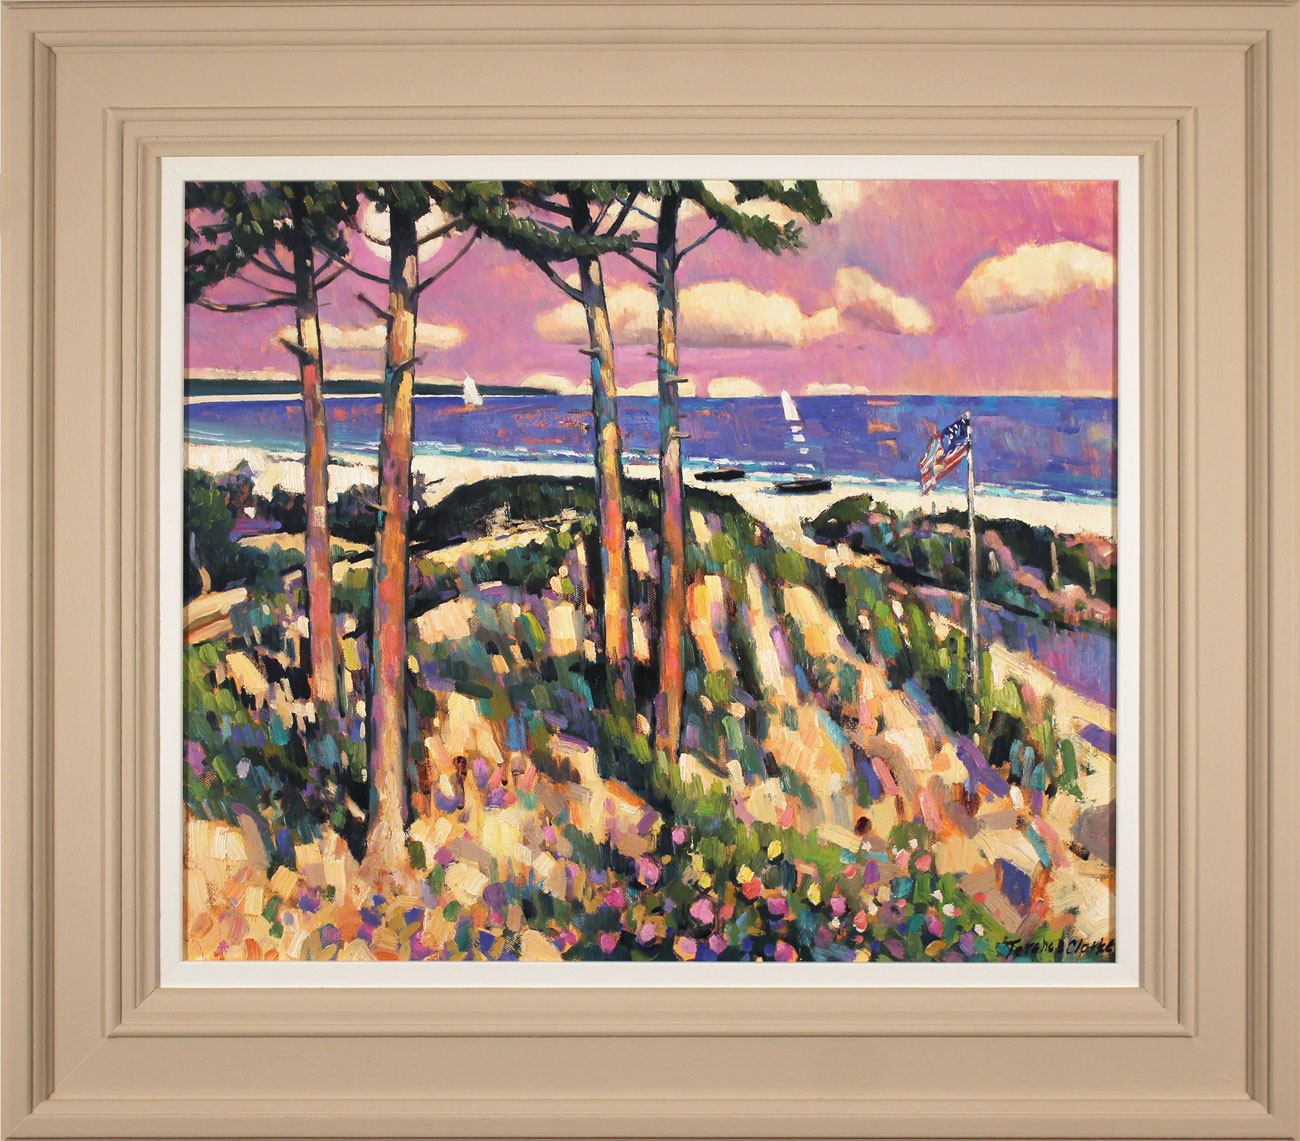 Terence Clarke, Original oil painting on canvas, Moonrise, Cape Cod Click to enlarge